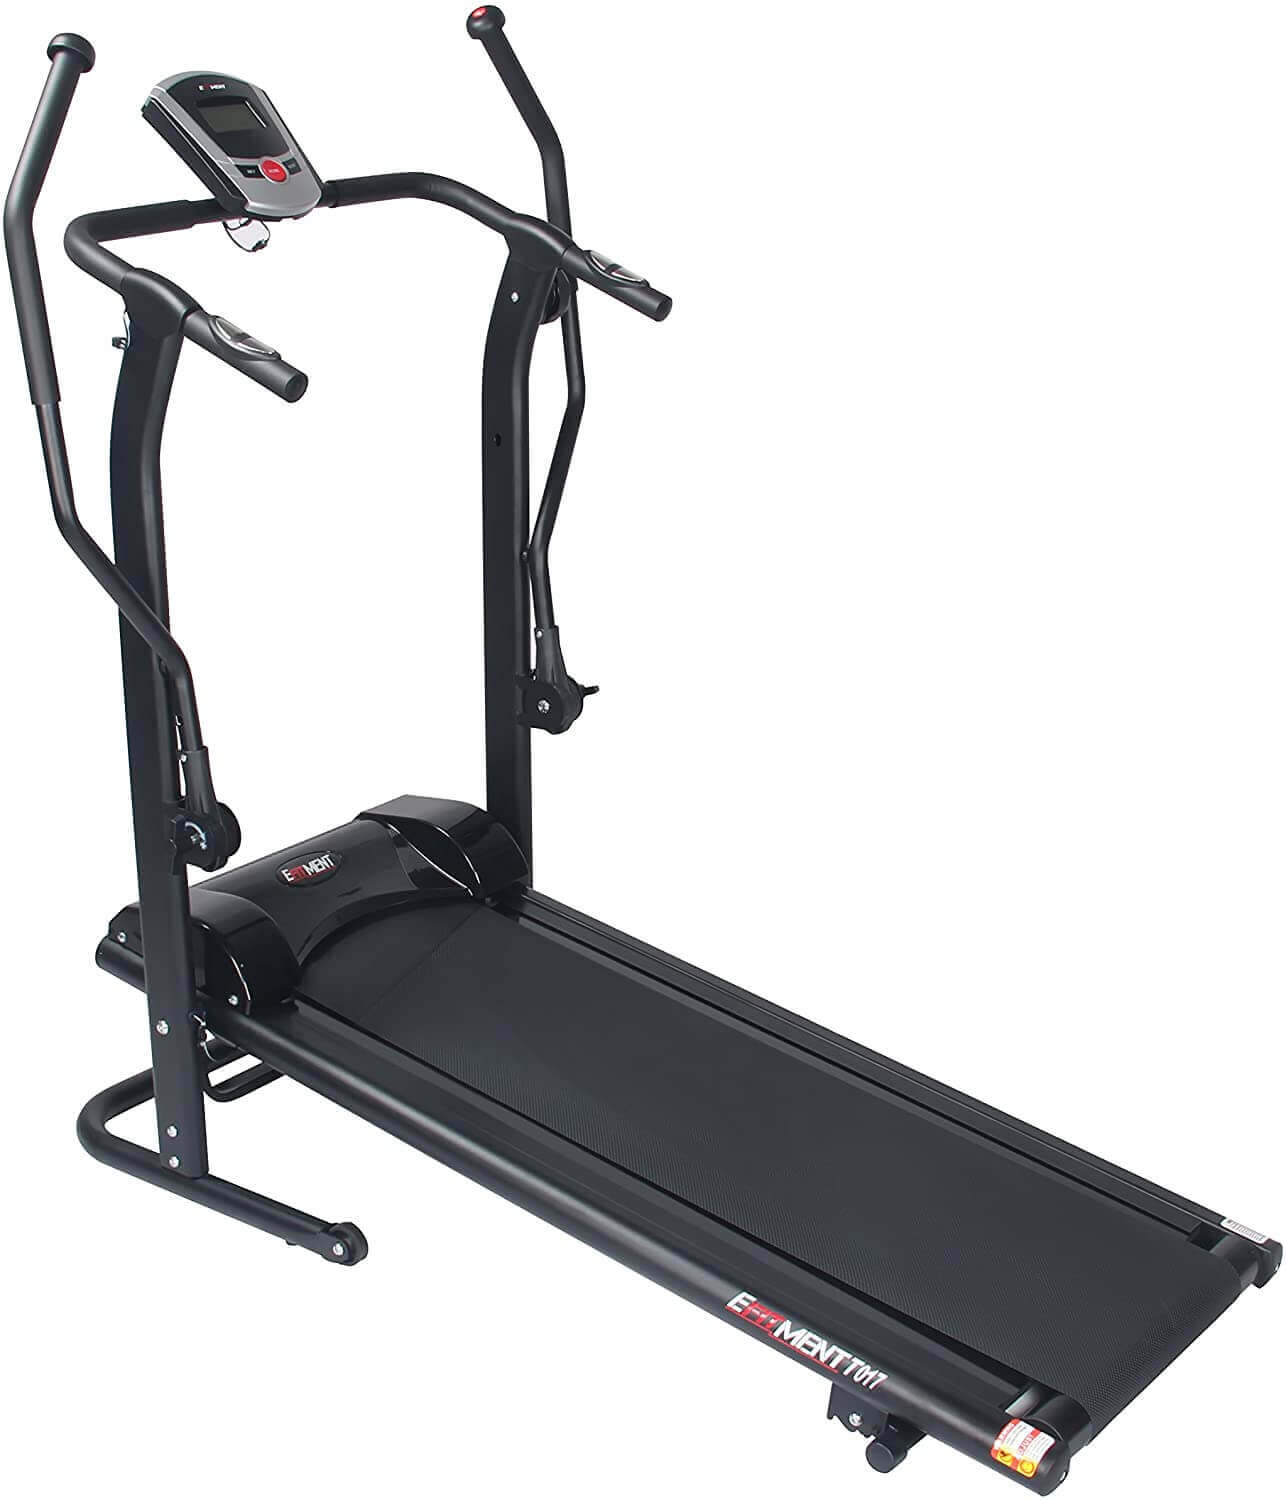 EFITMENT Magnetic Manual Treadmill w/Pulse Monitor and Adjustable Incline